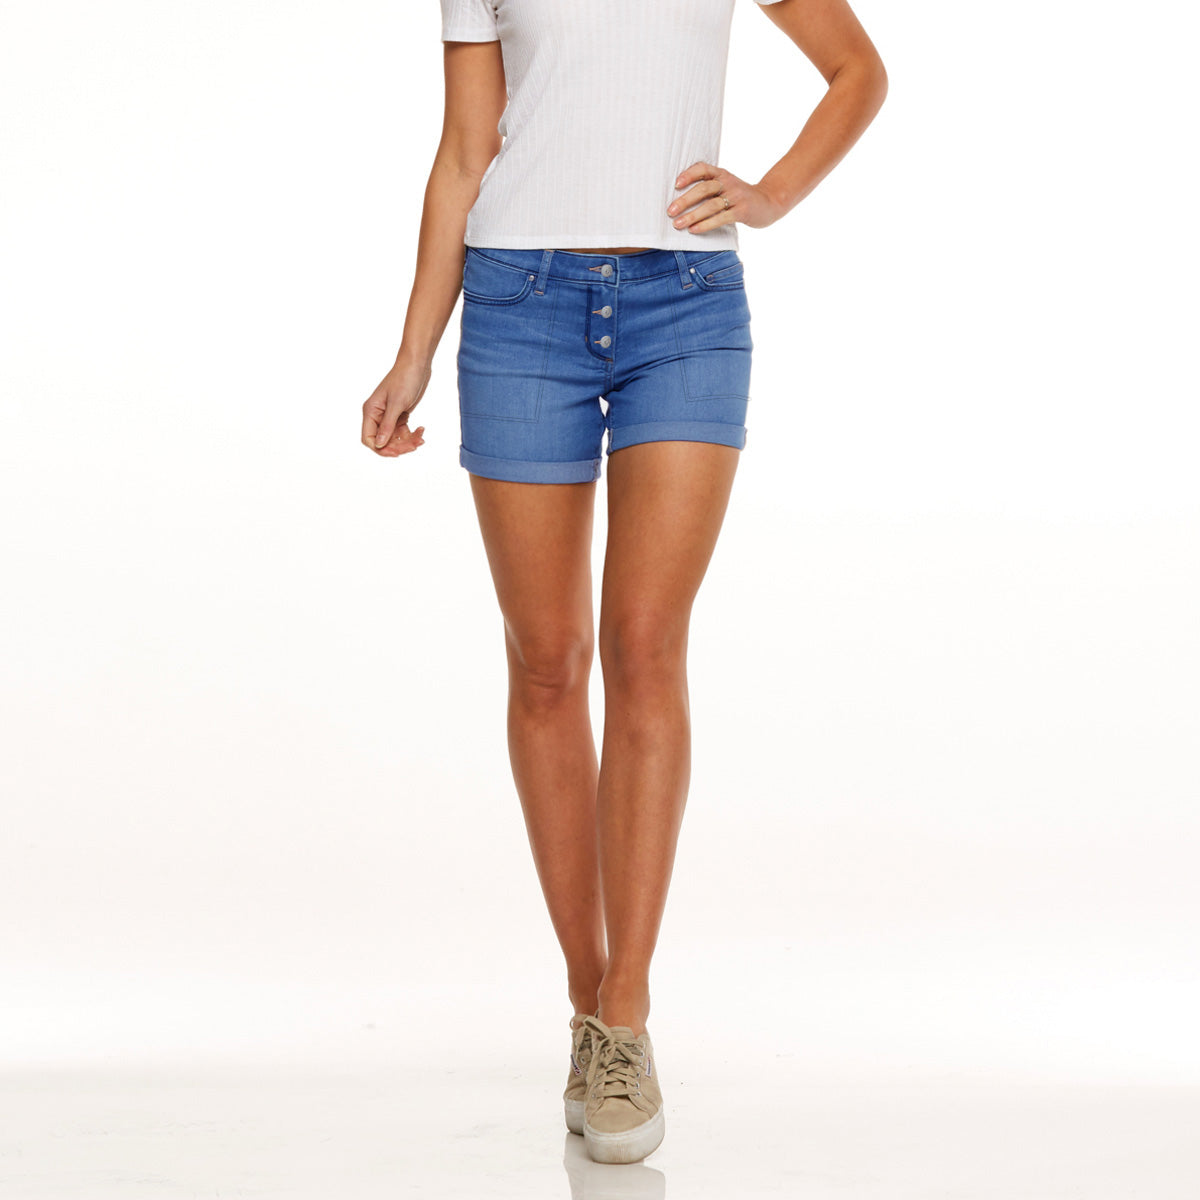 brandsego - Candy Couture Denim Short For Girls-Navy-SP057